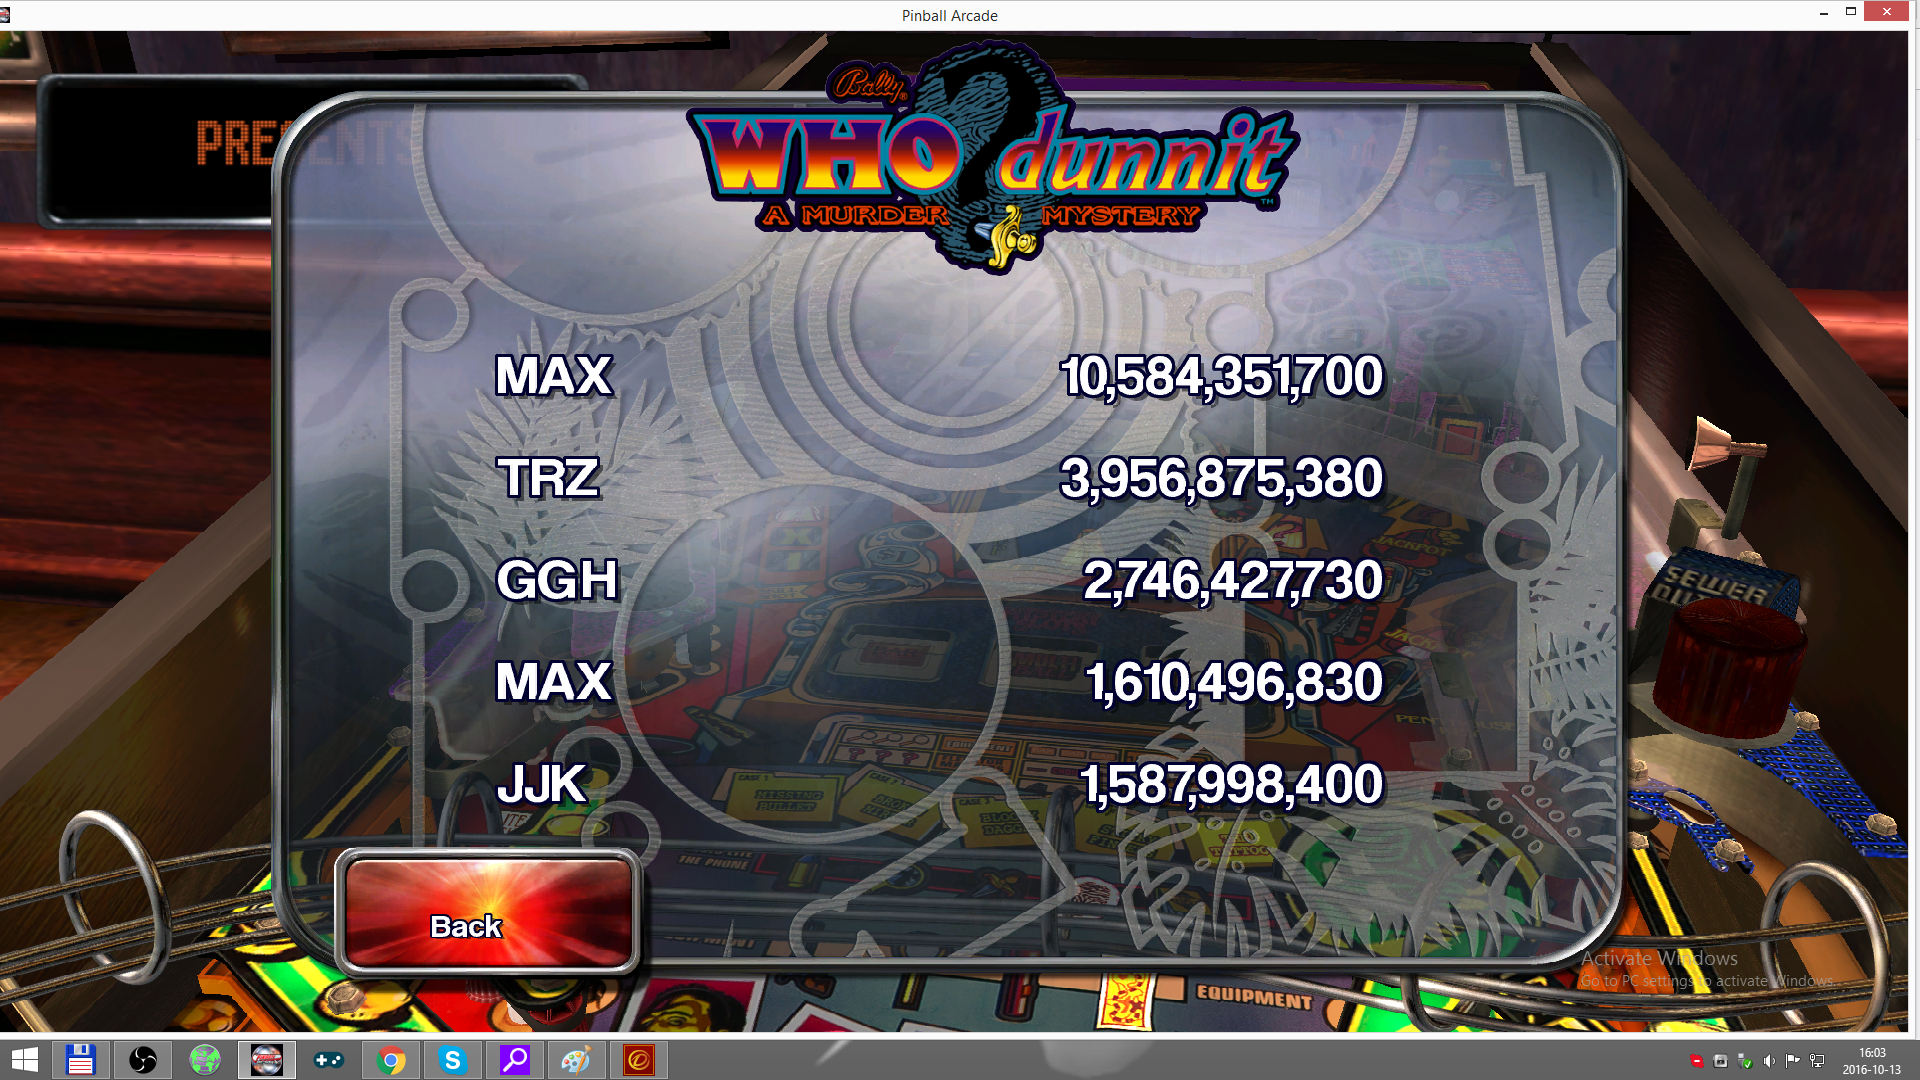 Pinball Arcade: WHO Dunnit 10,584,351,700 points